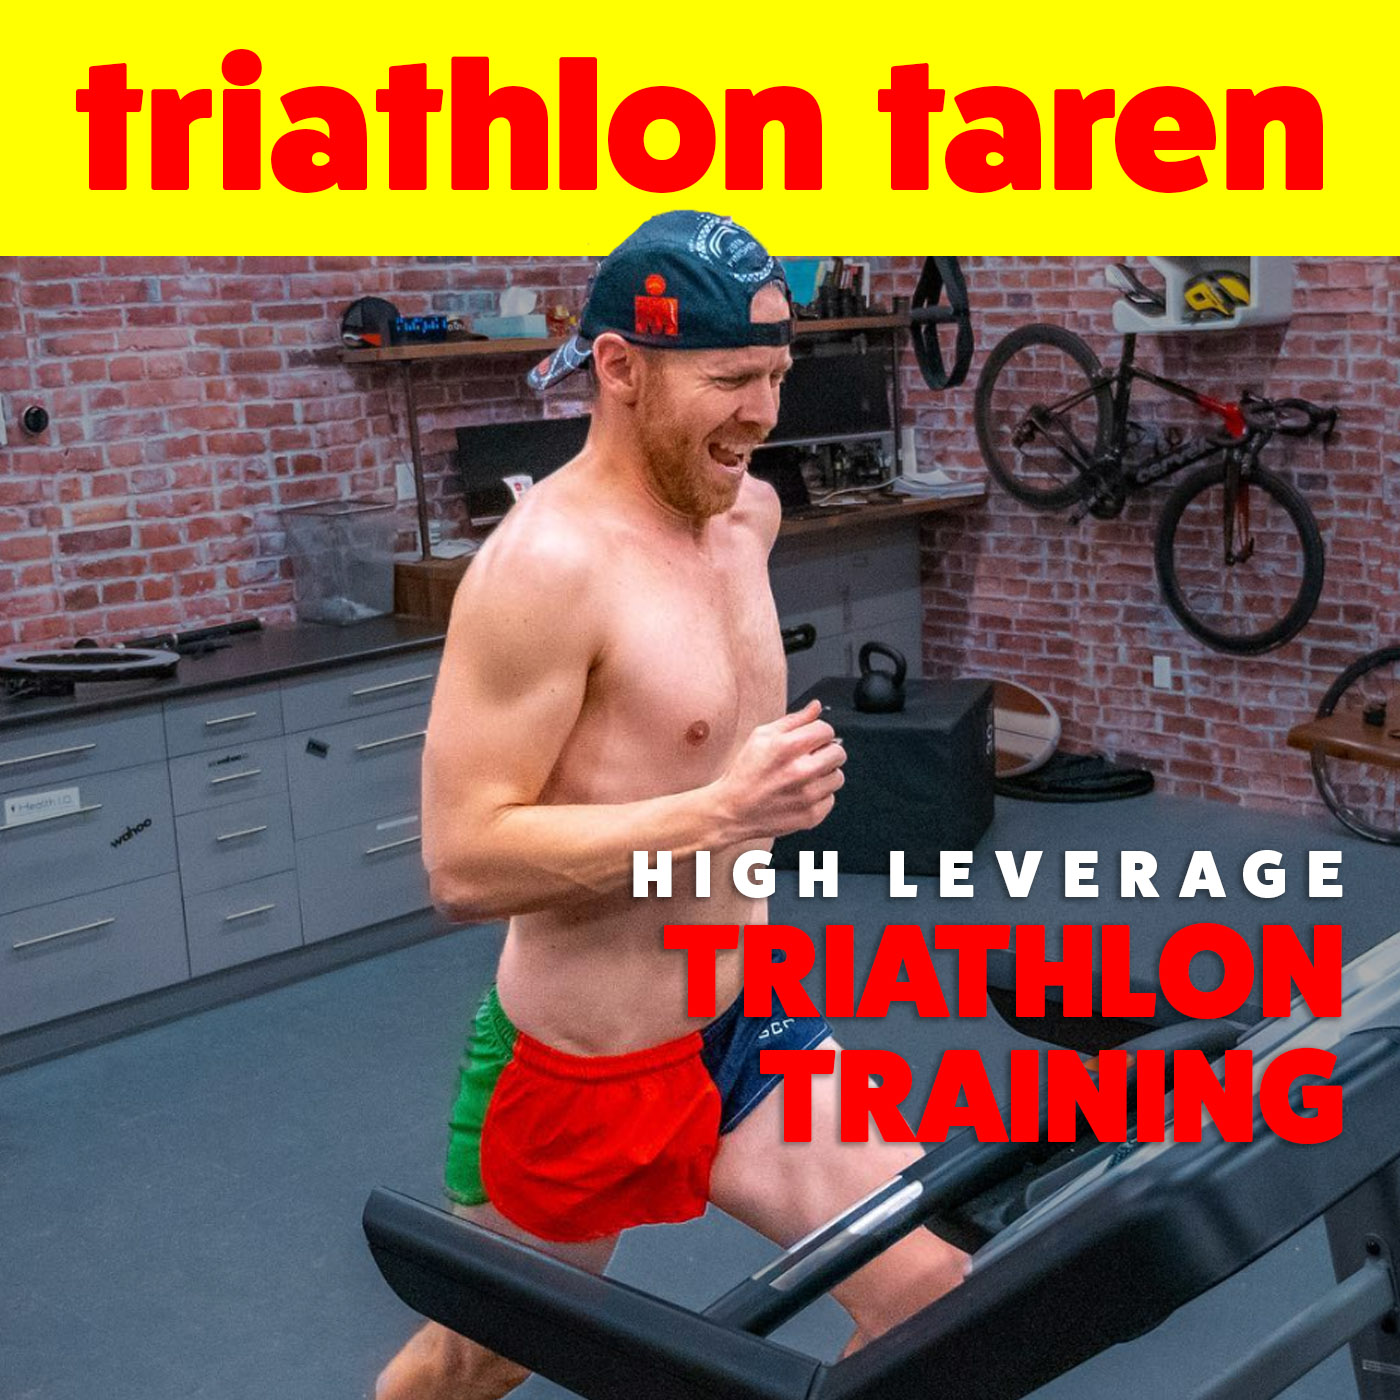 Highest Return on Time Training for Triathon: HIIT Training